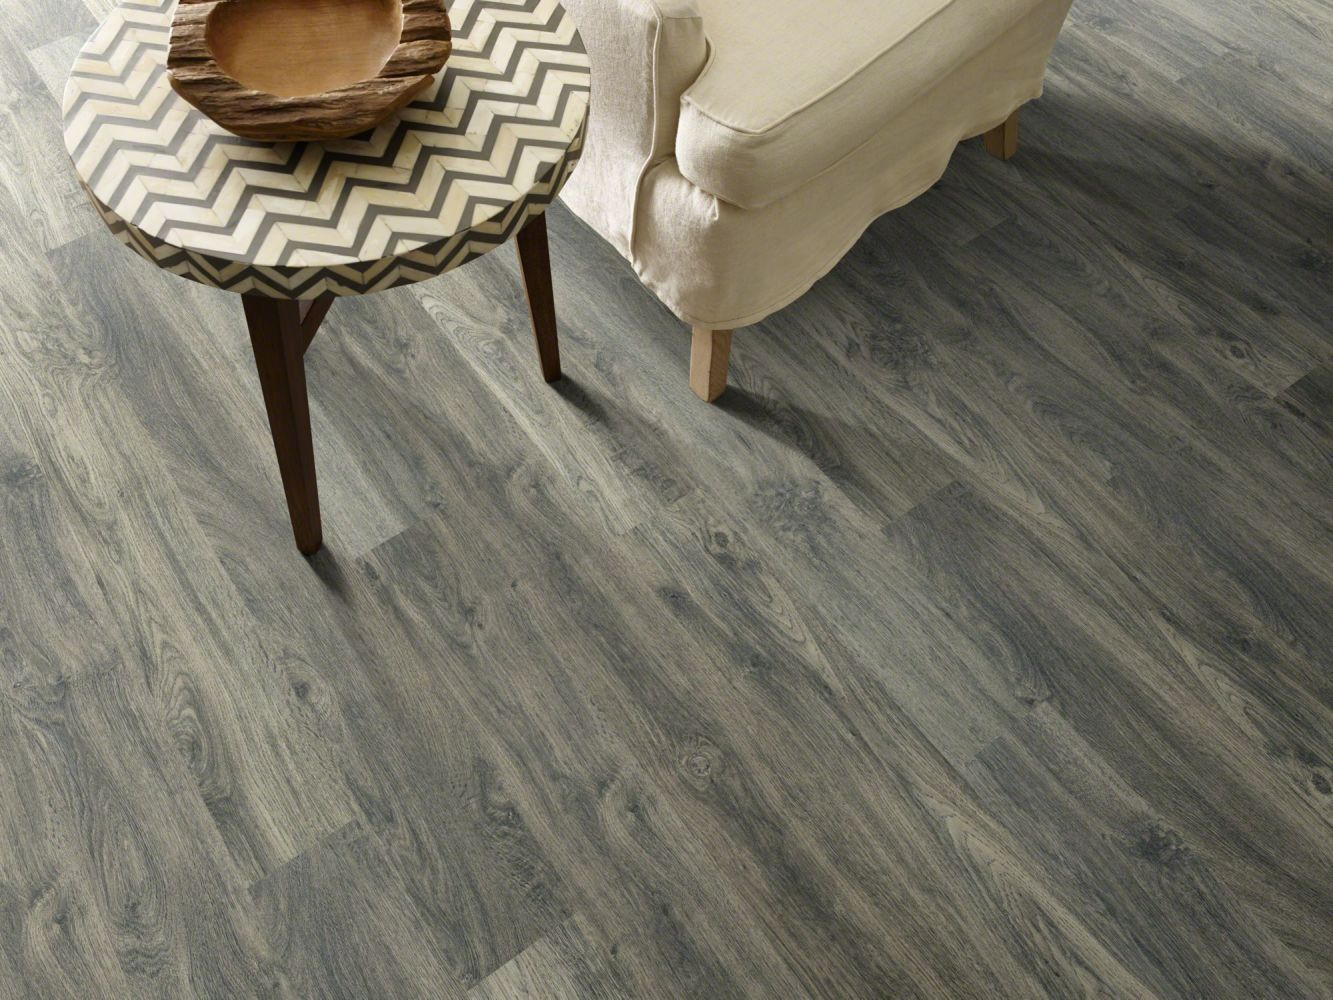 Shaw Floors Versalock Laminate Gold Coast Burleigh Taupe 01013_SL381